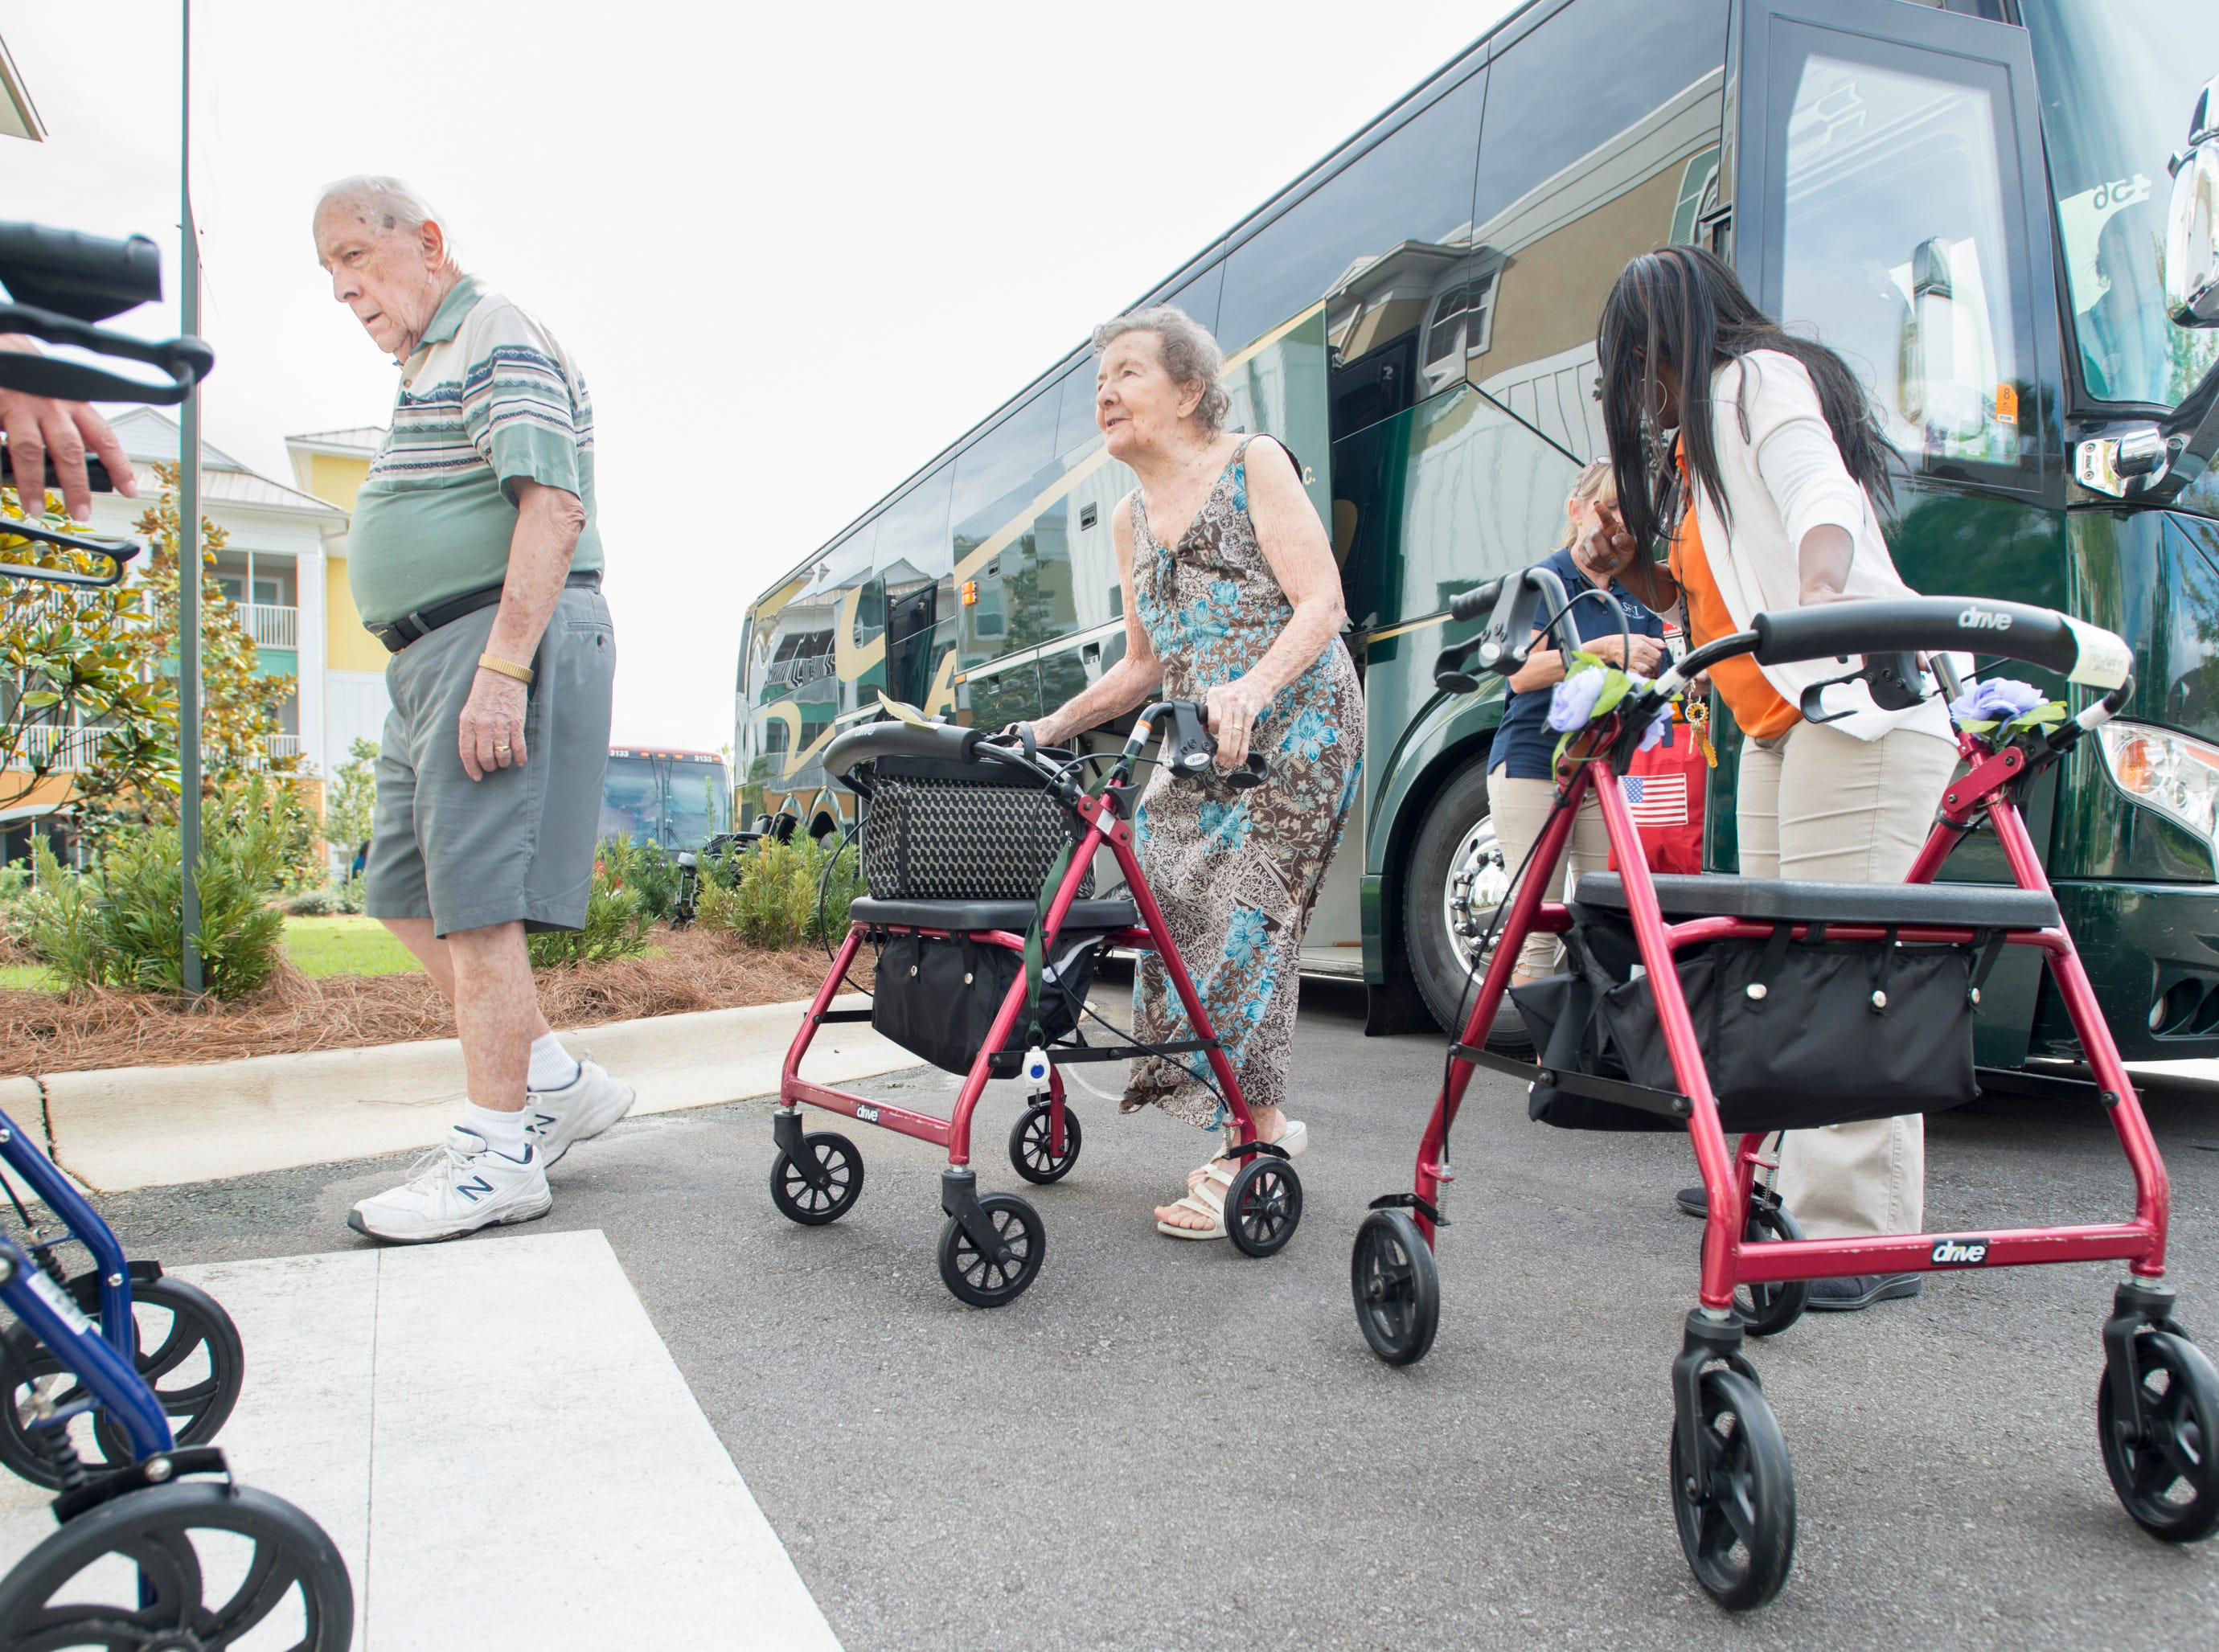 Superior Residences of Panama City Beach residents John and Alice Costello make their way from a bus to the Arbors of Gulf Breeze senior living community in Gulf Breeze on Tuesday, October 9, 2018.  Residents and staff from Panama City Beach were evacuated to this sister community as Hurricane Michael approaches the Florida panhandle.